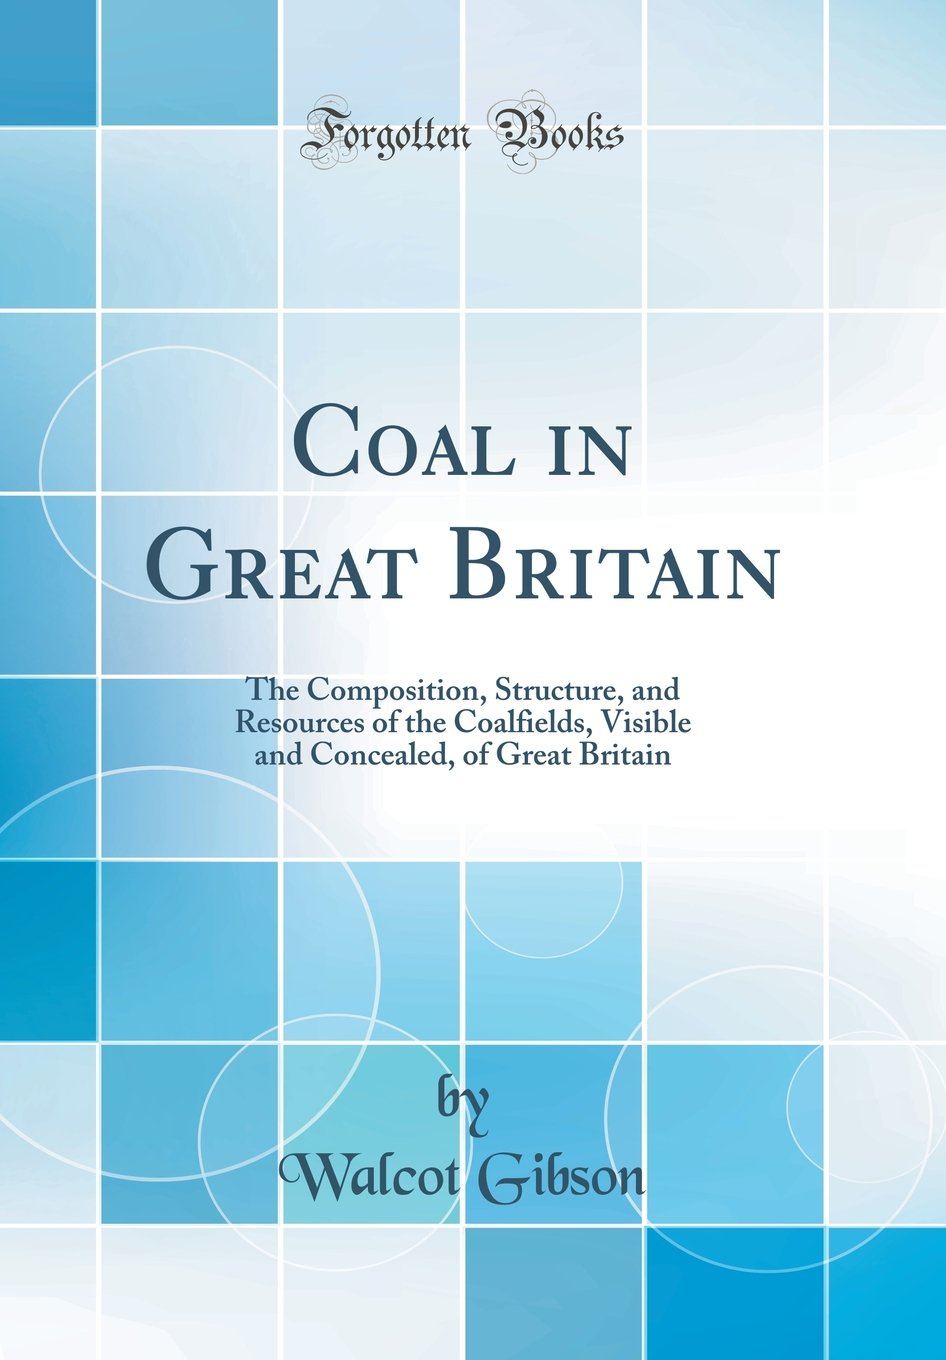 Coal in Great Britain: The Composition, Structure, and Resources of the Coalfields, Visible and Concealed, of Great Britain (Classic Reprint) ebook